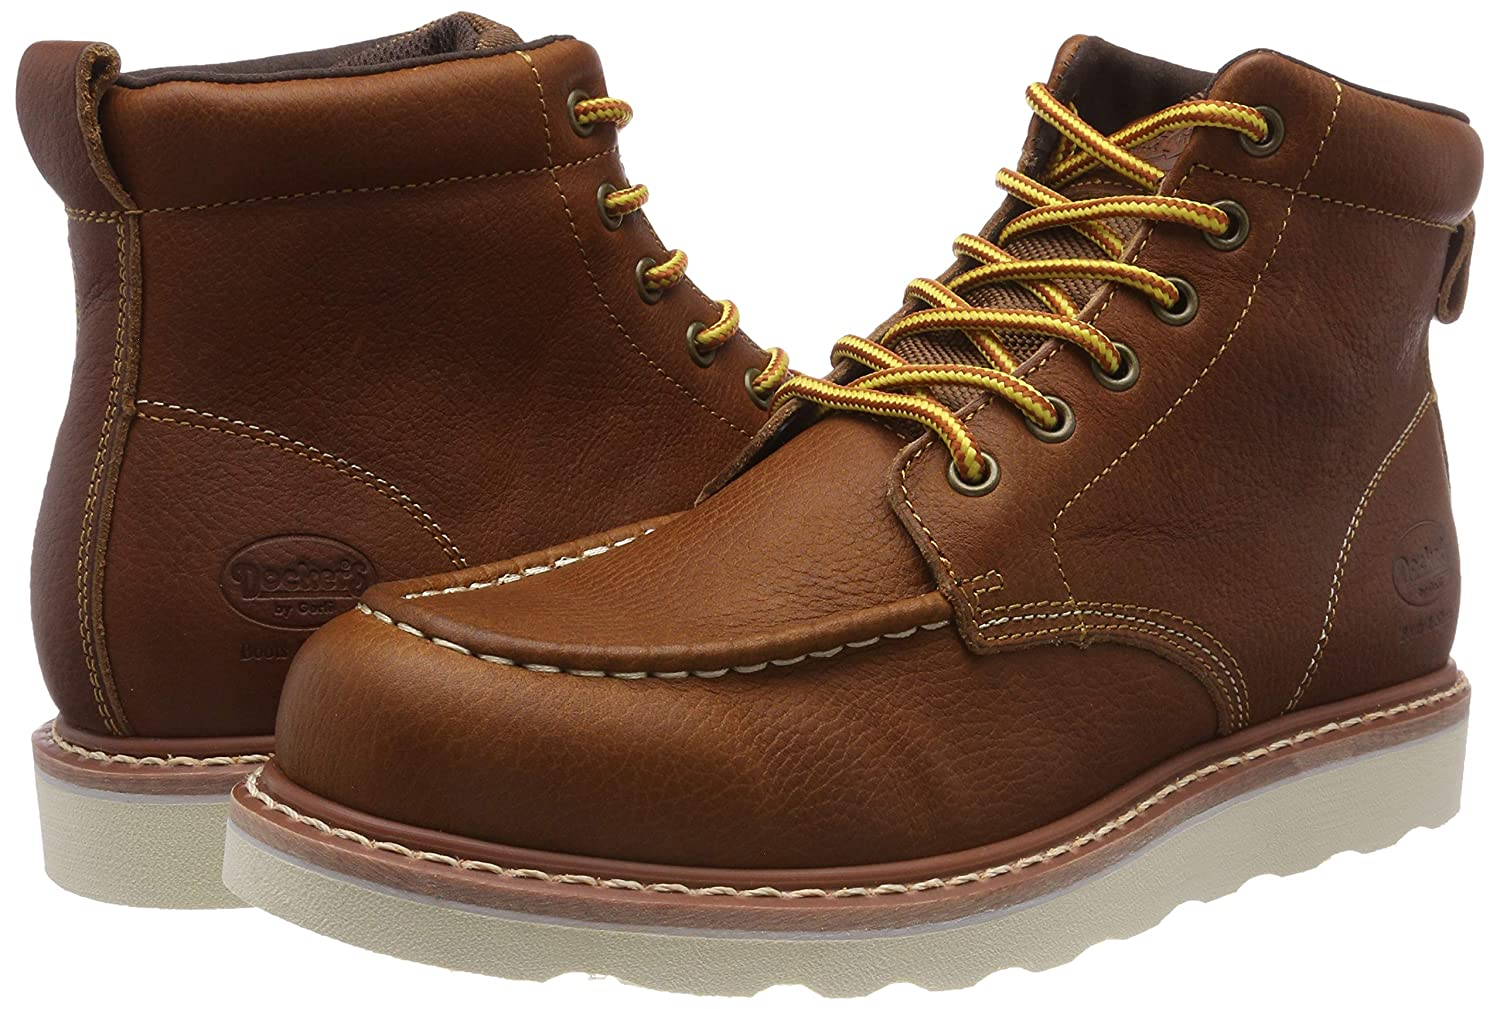 625f533dc6953 Dockers by Gerli Men s 43ms001 Combat Boots  Amazon.co.uk  Shoes   Bags